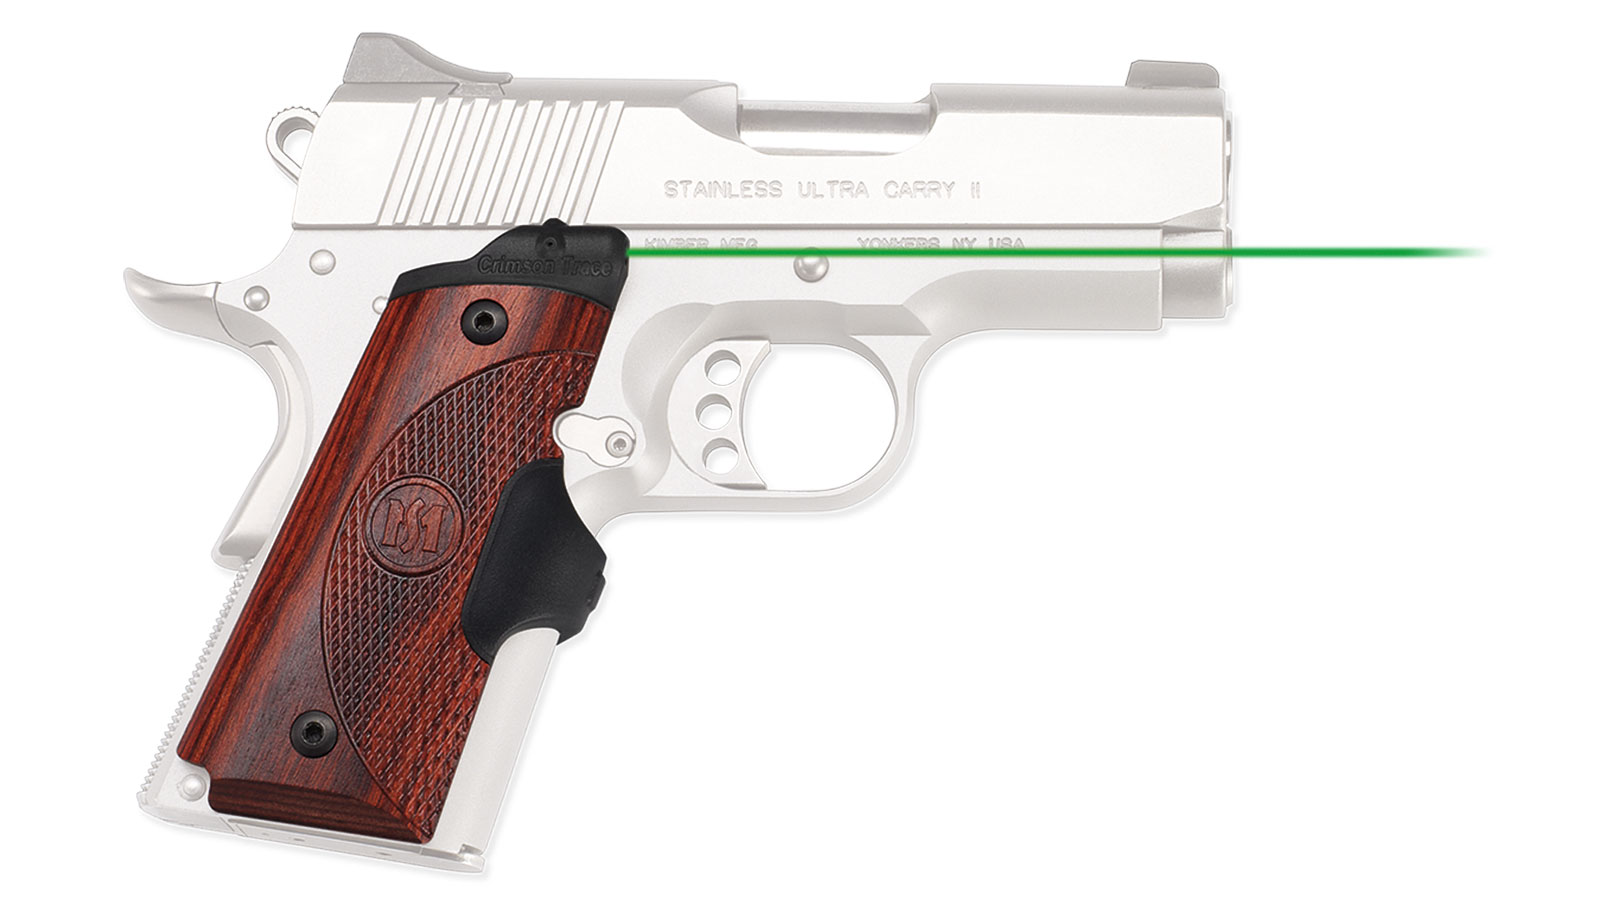 Crimson Trace Green Master Series Lasergrips Rosewood for 1911 Compact